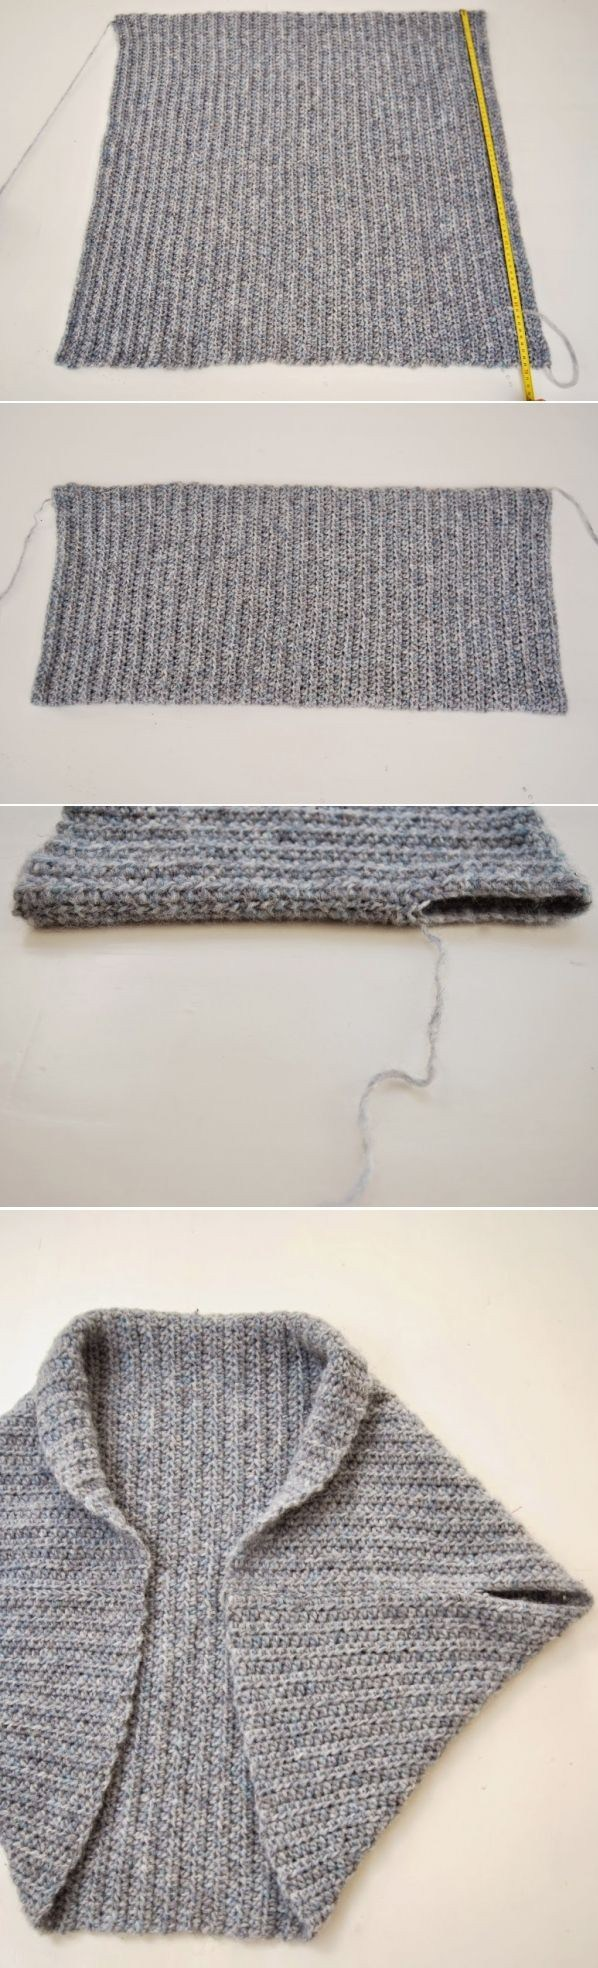 Easy Shrug Knitting Patterns In The Loop Knitting